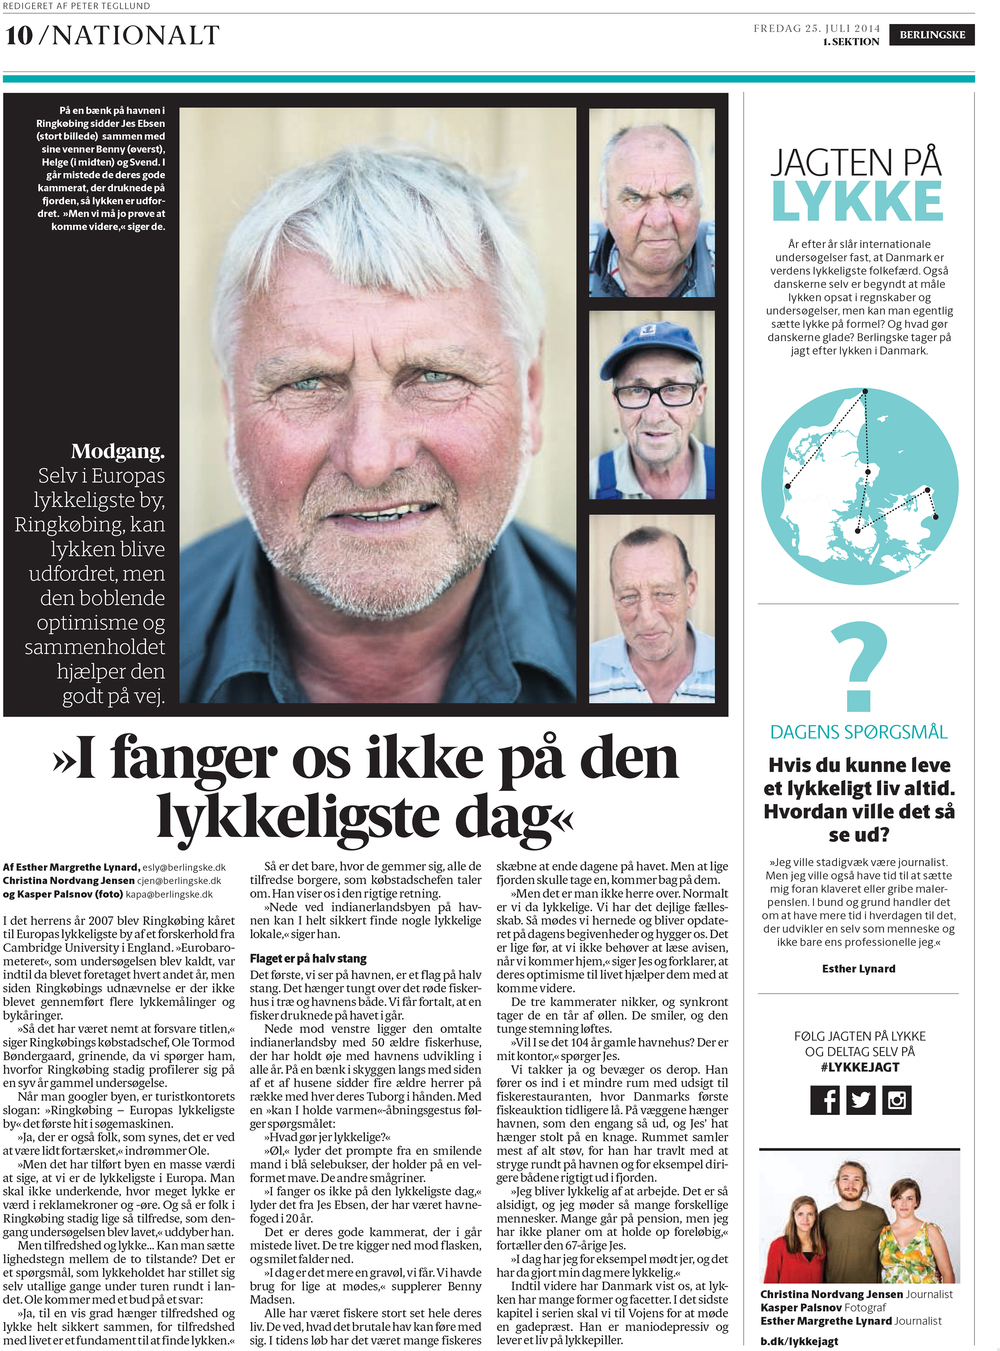 The Pursuit of Happiness 2/2 - Berlingske